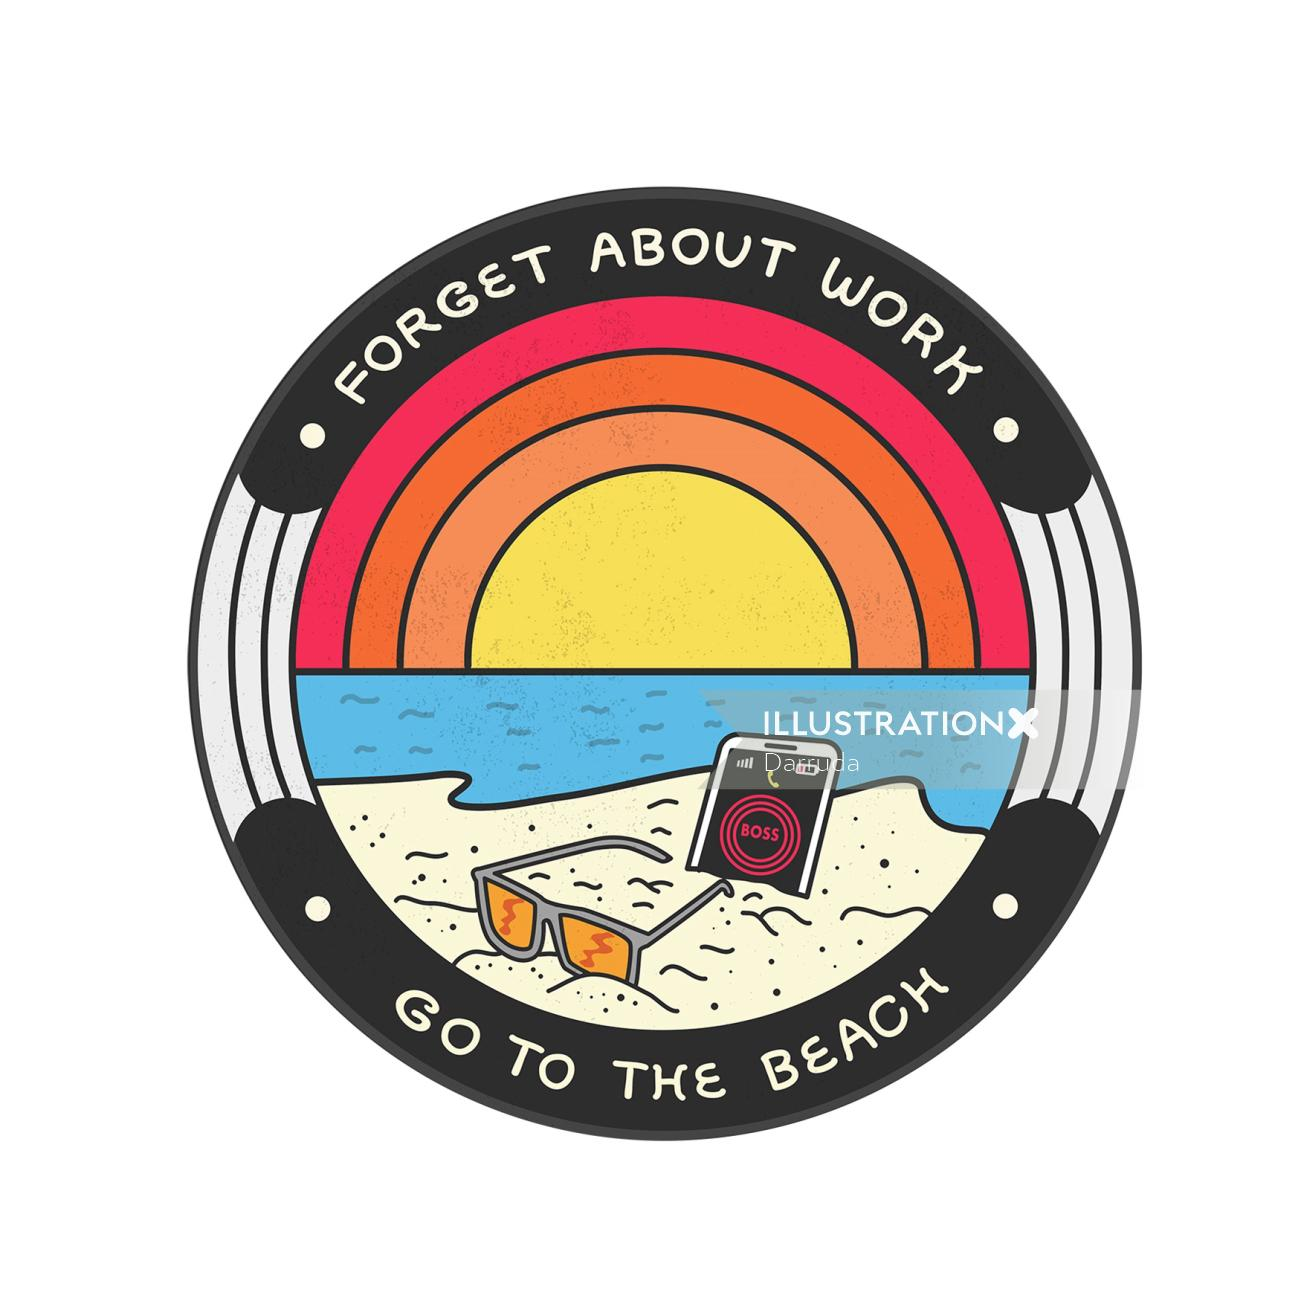 Conceptual illustration of forgot about work and go to beach